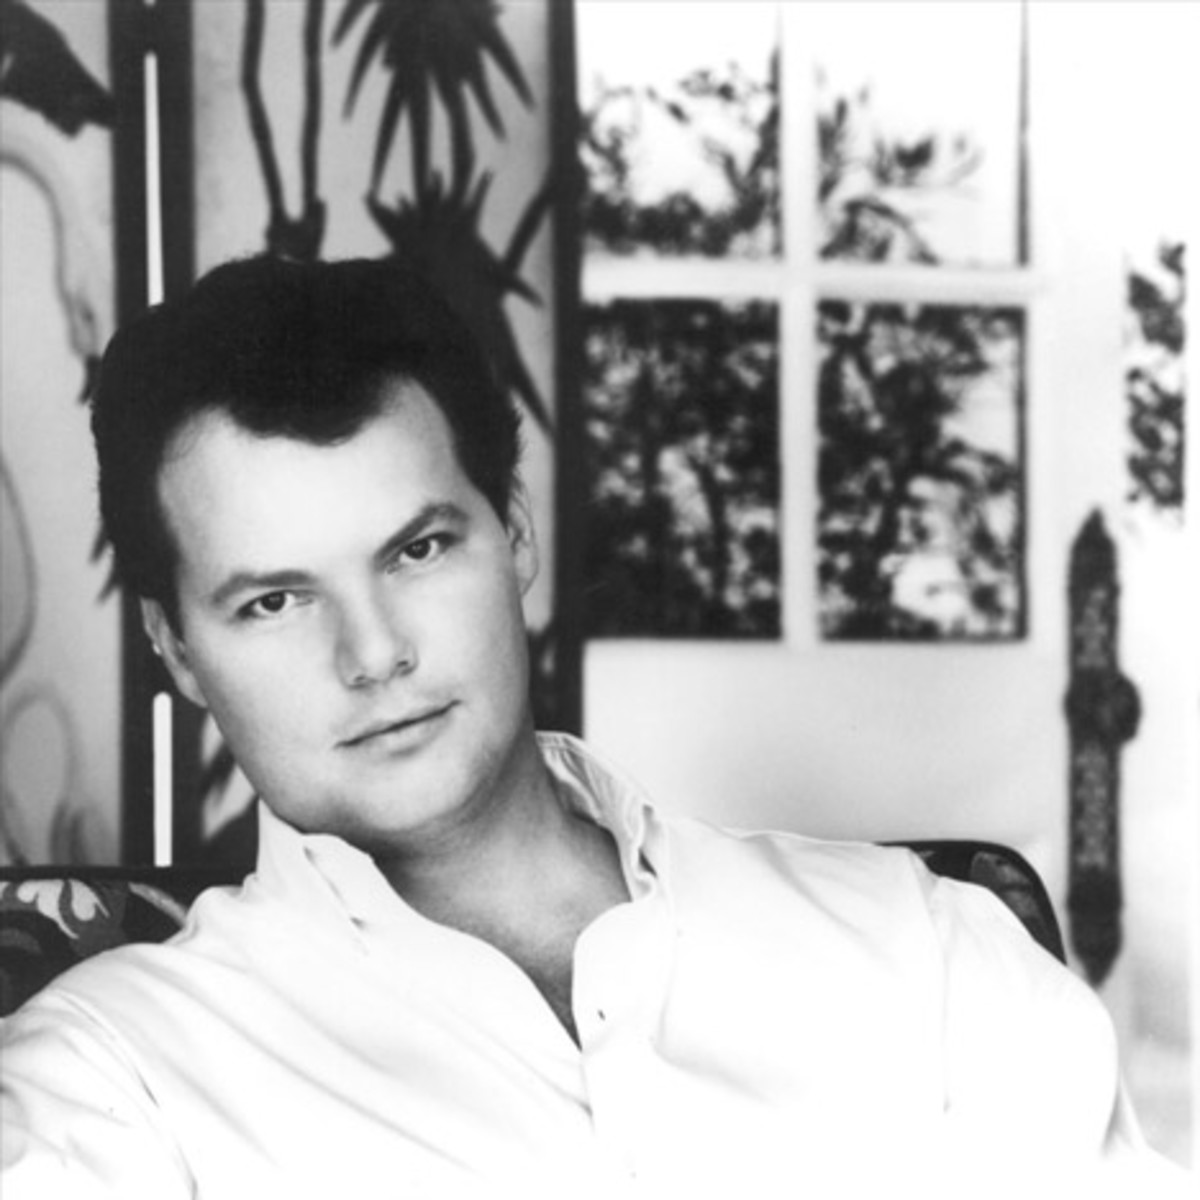 """Christopher Cross experienced a great deal of success in the early 1980s, but he admits he really wans't ready to play 20,000-seat audiences, and it all was a big blur. """"Those few years were like an out-of-body thing. I remember a lot of it, and I""""m certainly very honored and humbled that it all happened, but it was pretty surreal. Warner Bros. publicity photo/Matthew Rolston."""